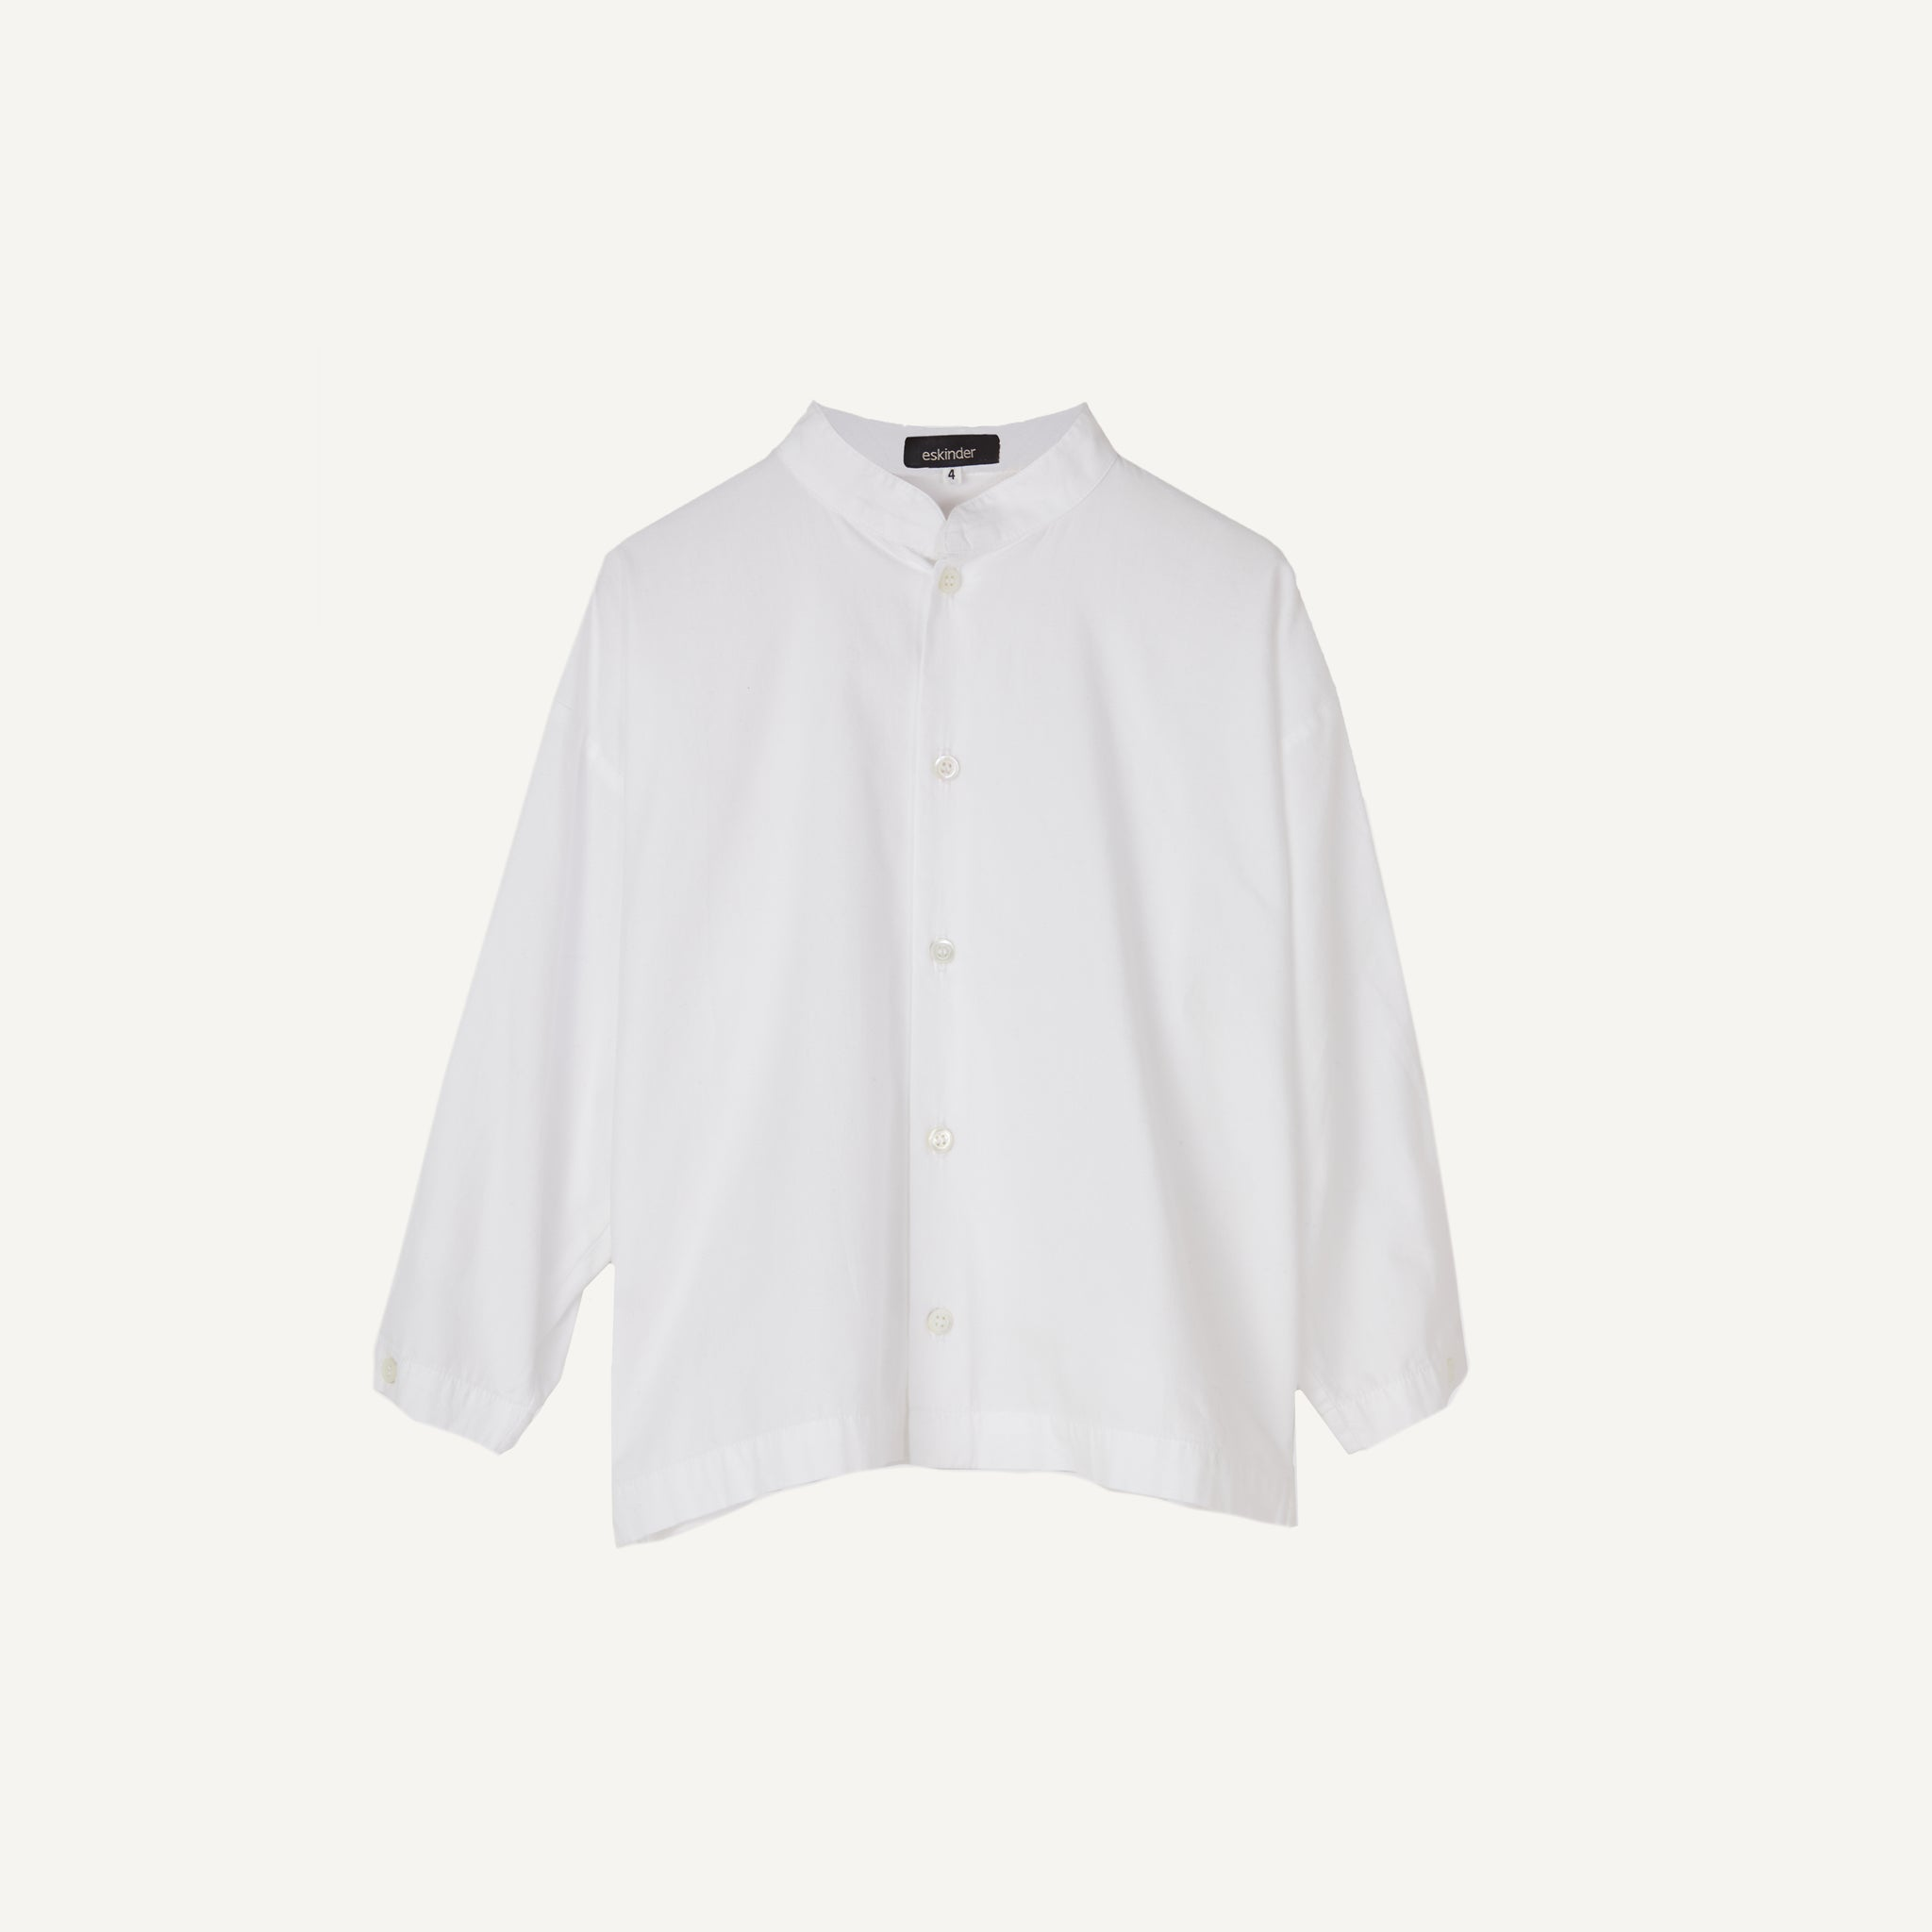 ESKINDER COLLARLESS SHIRT